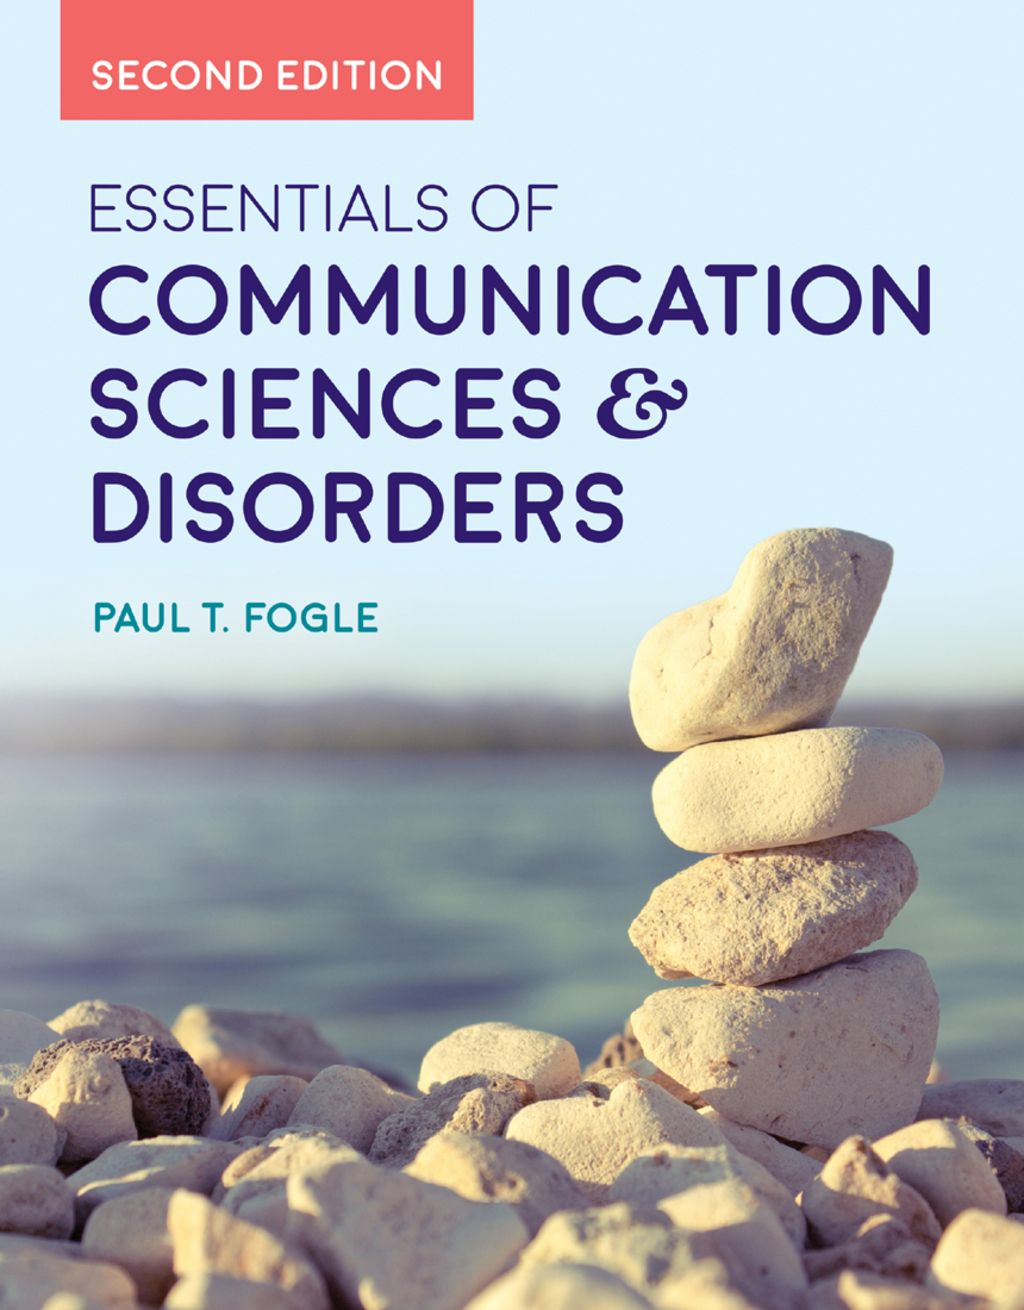 Essentials of Communication Sciences & Disorders (eBook